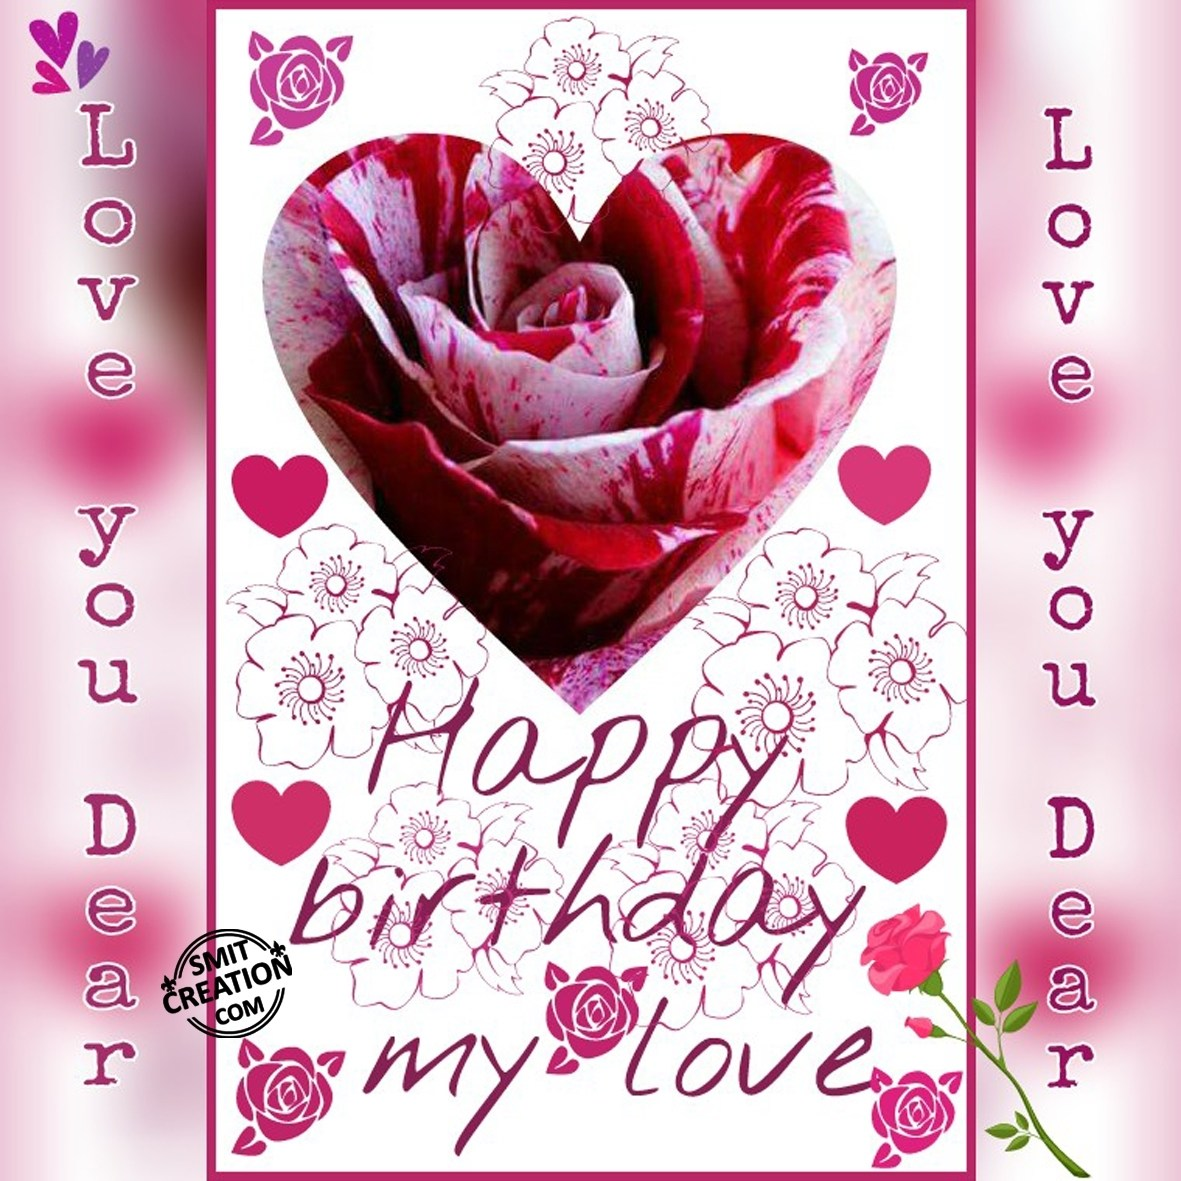 Birthday Wishes For Boyfriend Pictures And Graphics Smitcreation